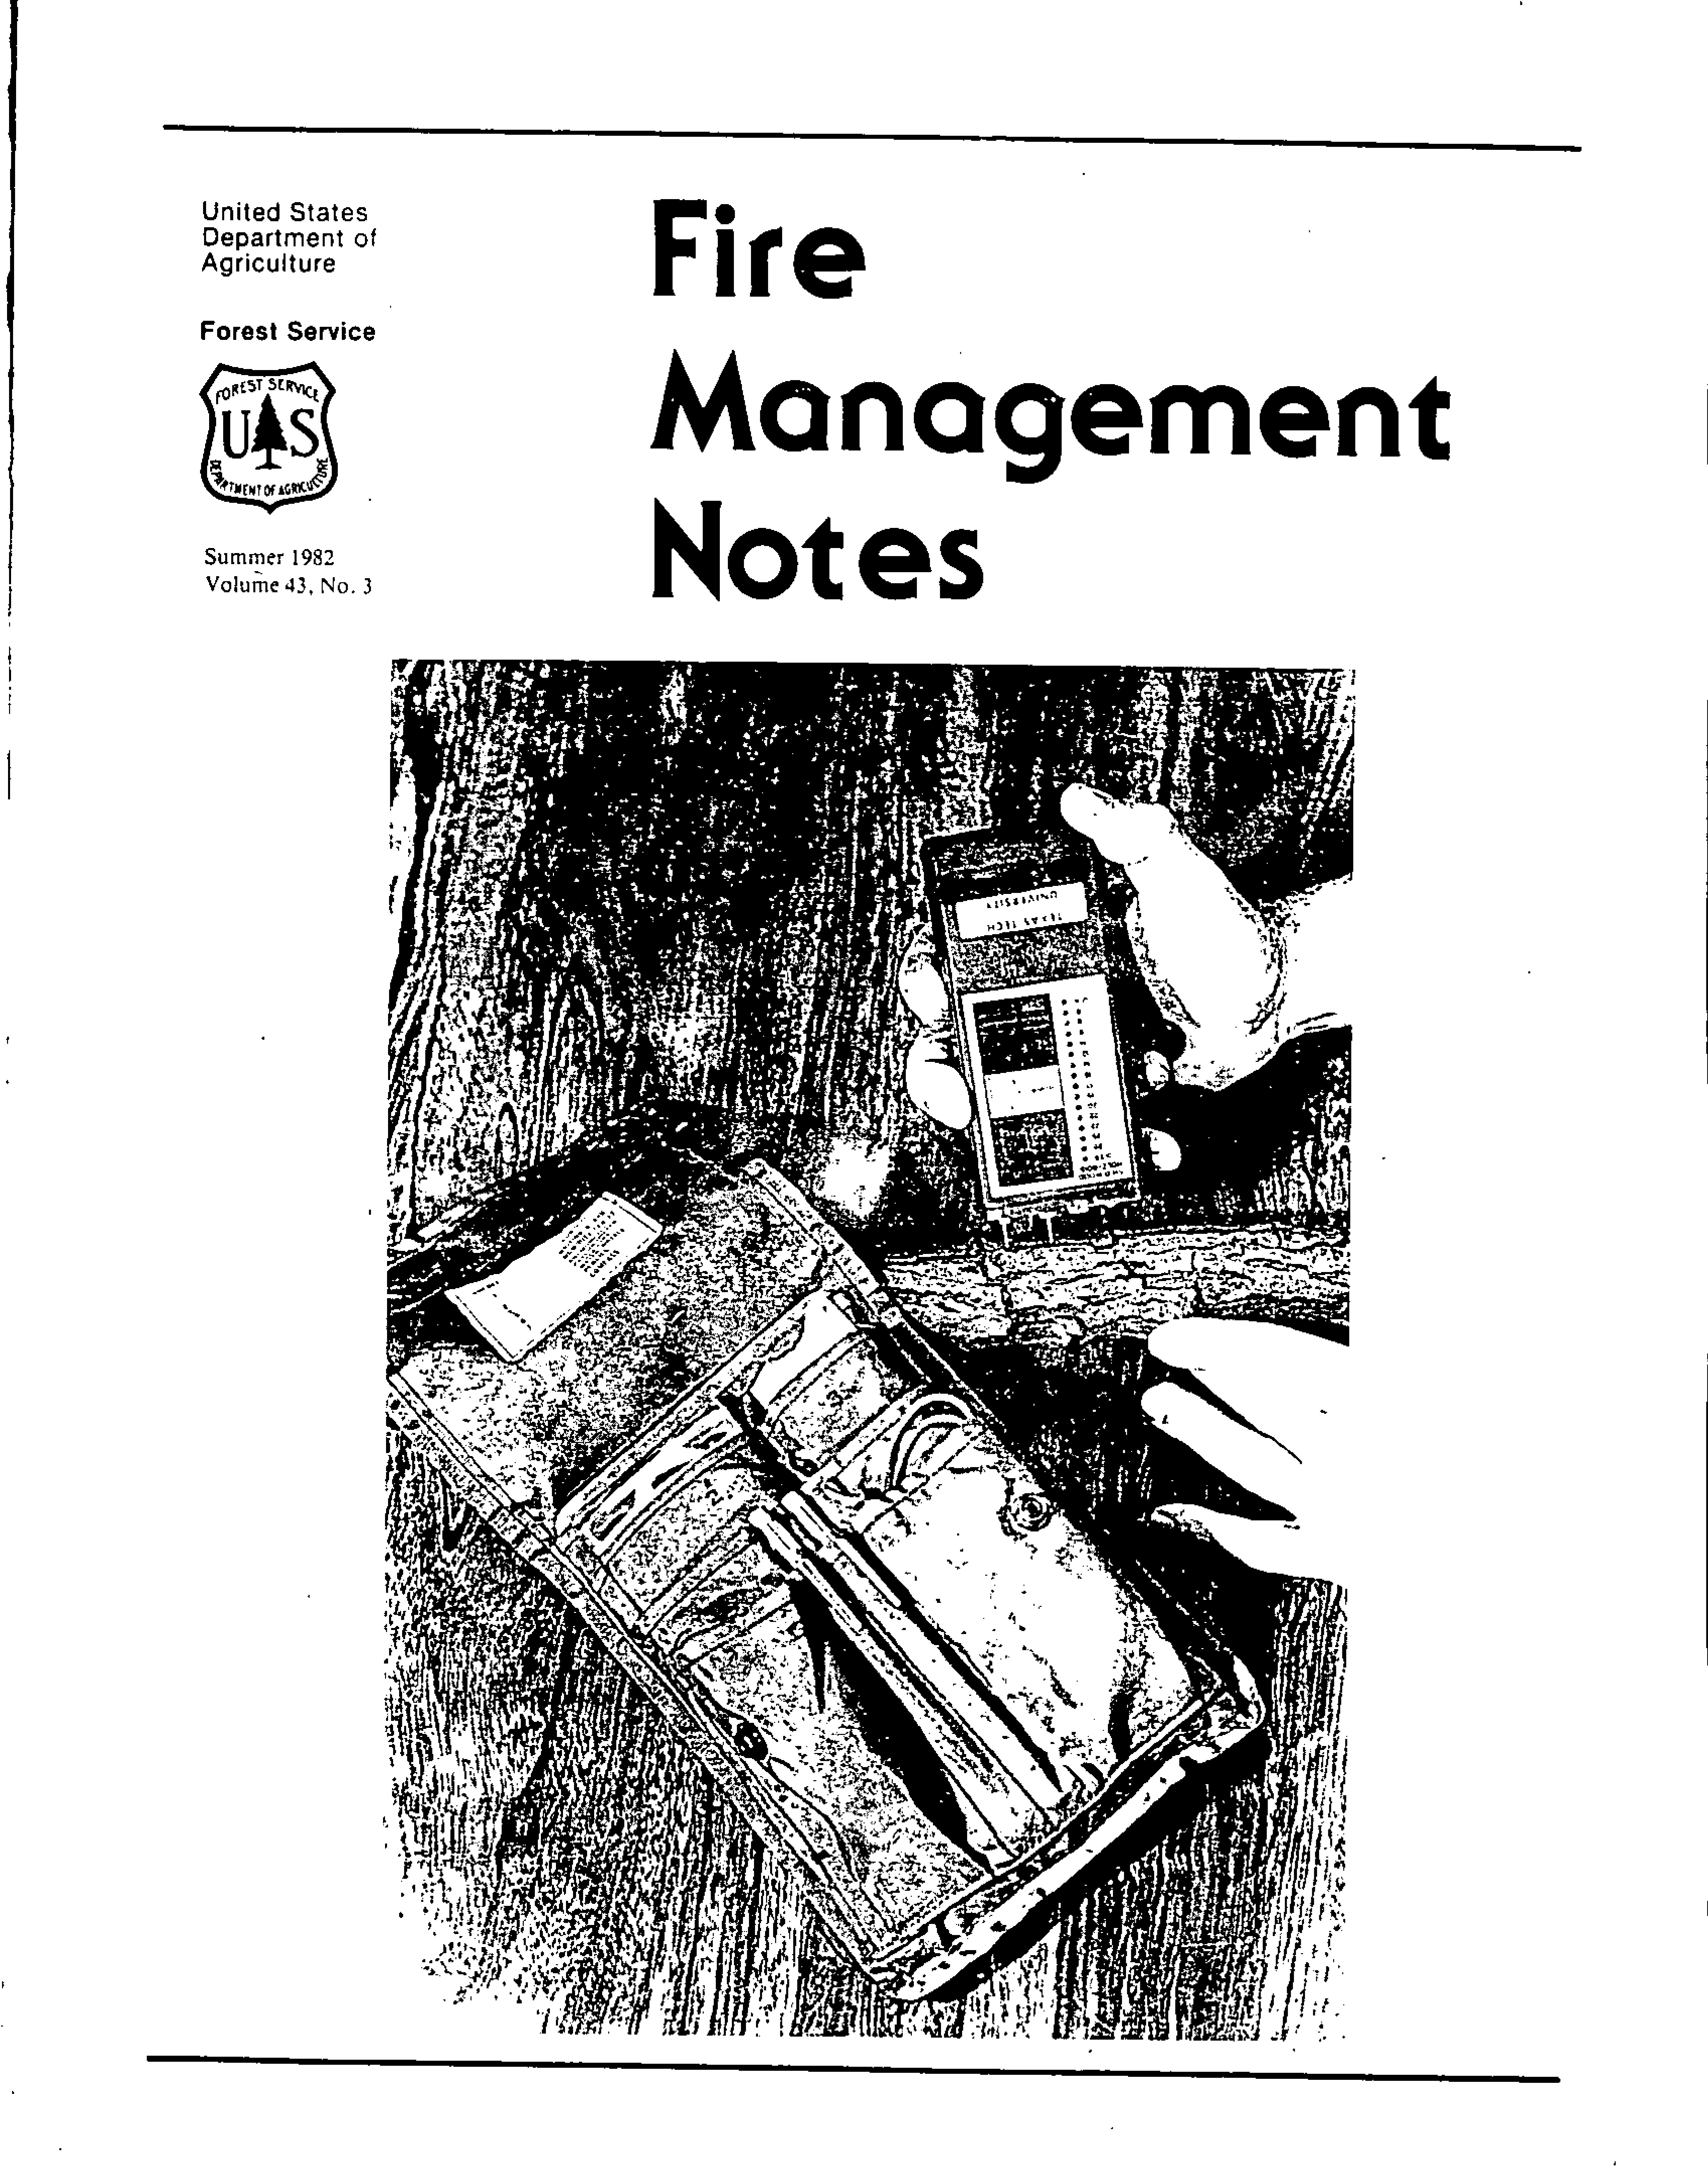 Cover of Fire Management Today Volume 43, Issue 03